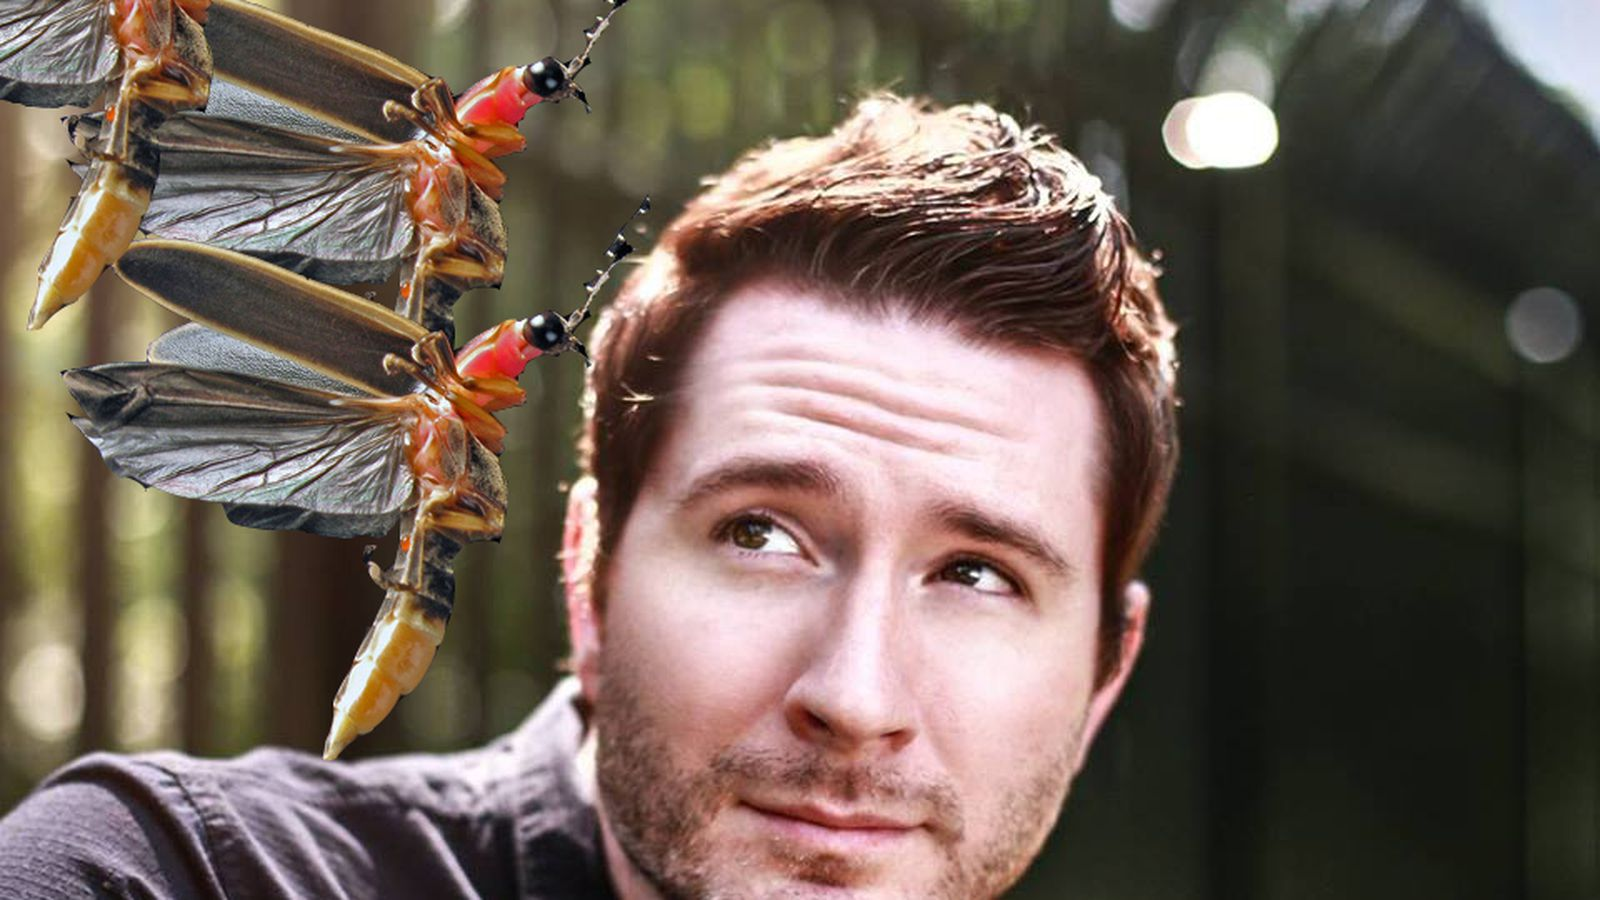 Fact-checking Owl City's description of being hugged by 10,000 fireflies